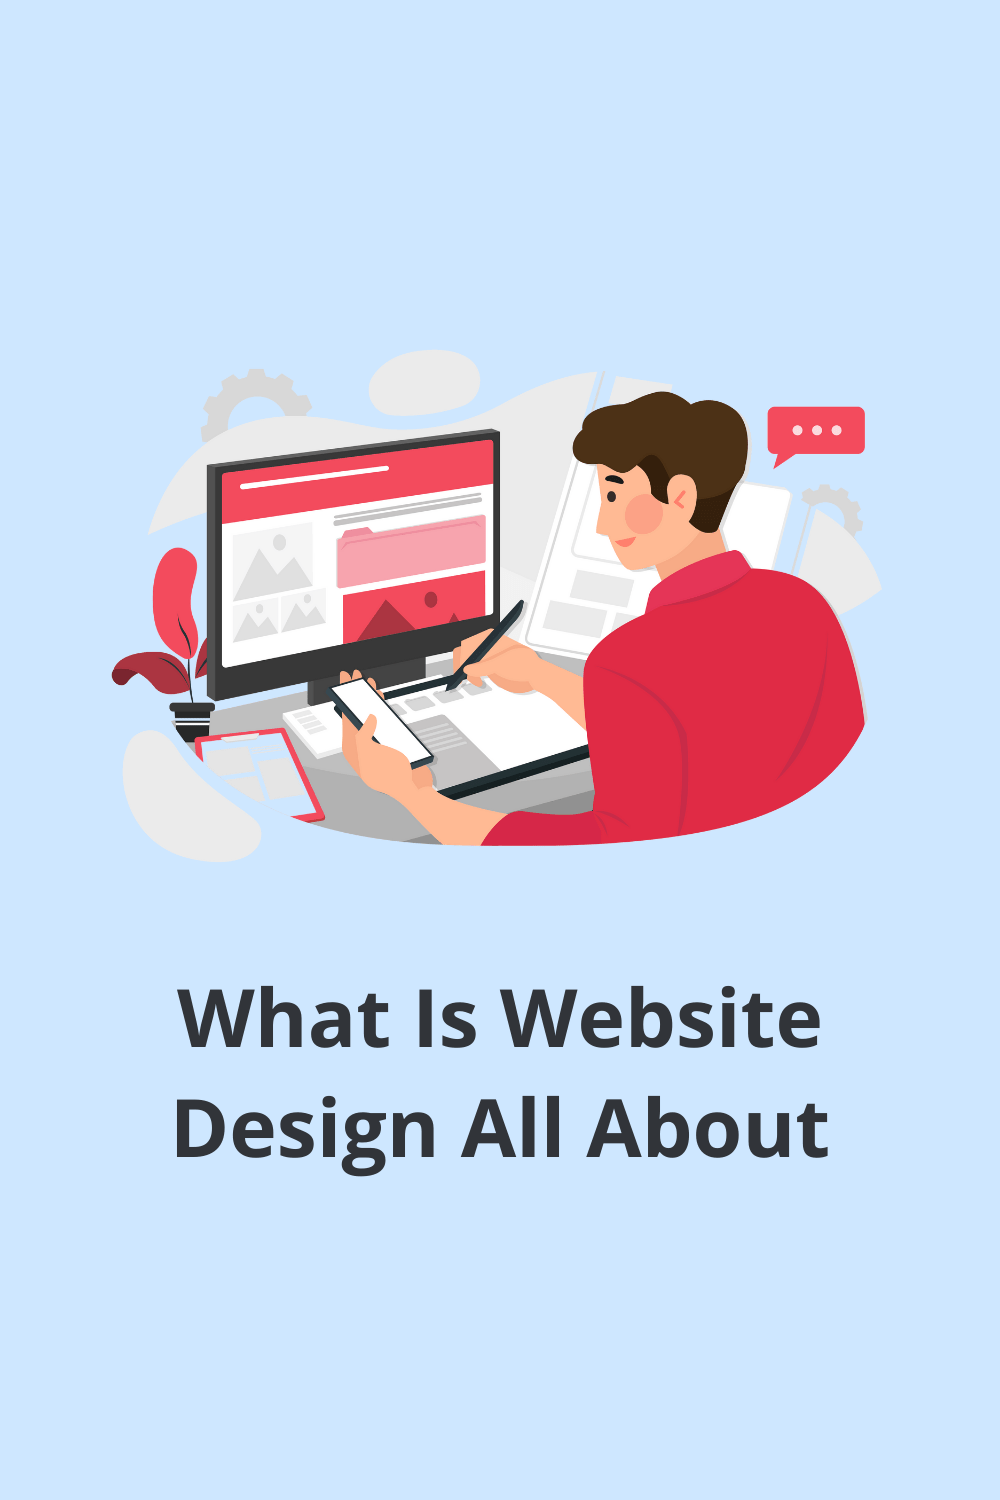 There are a lot of components when creating a website design. Here are some elements Scope Design uses for an improved and better site. via @scopedesign